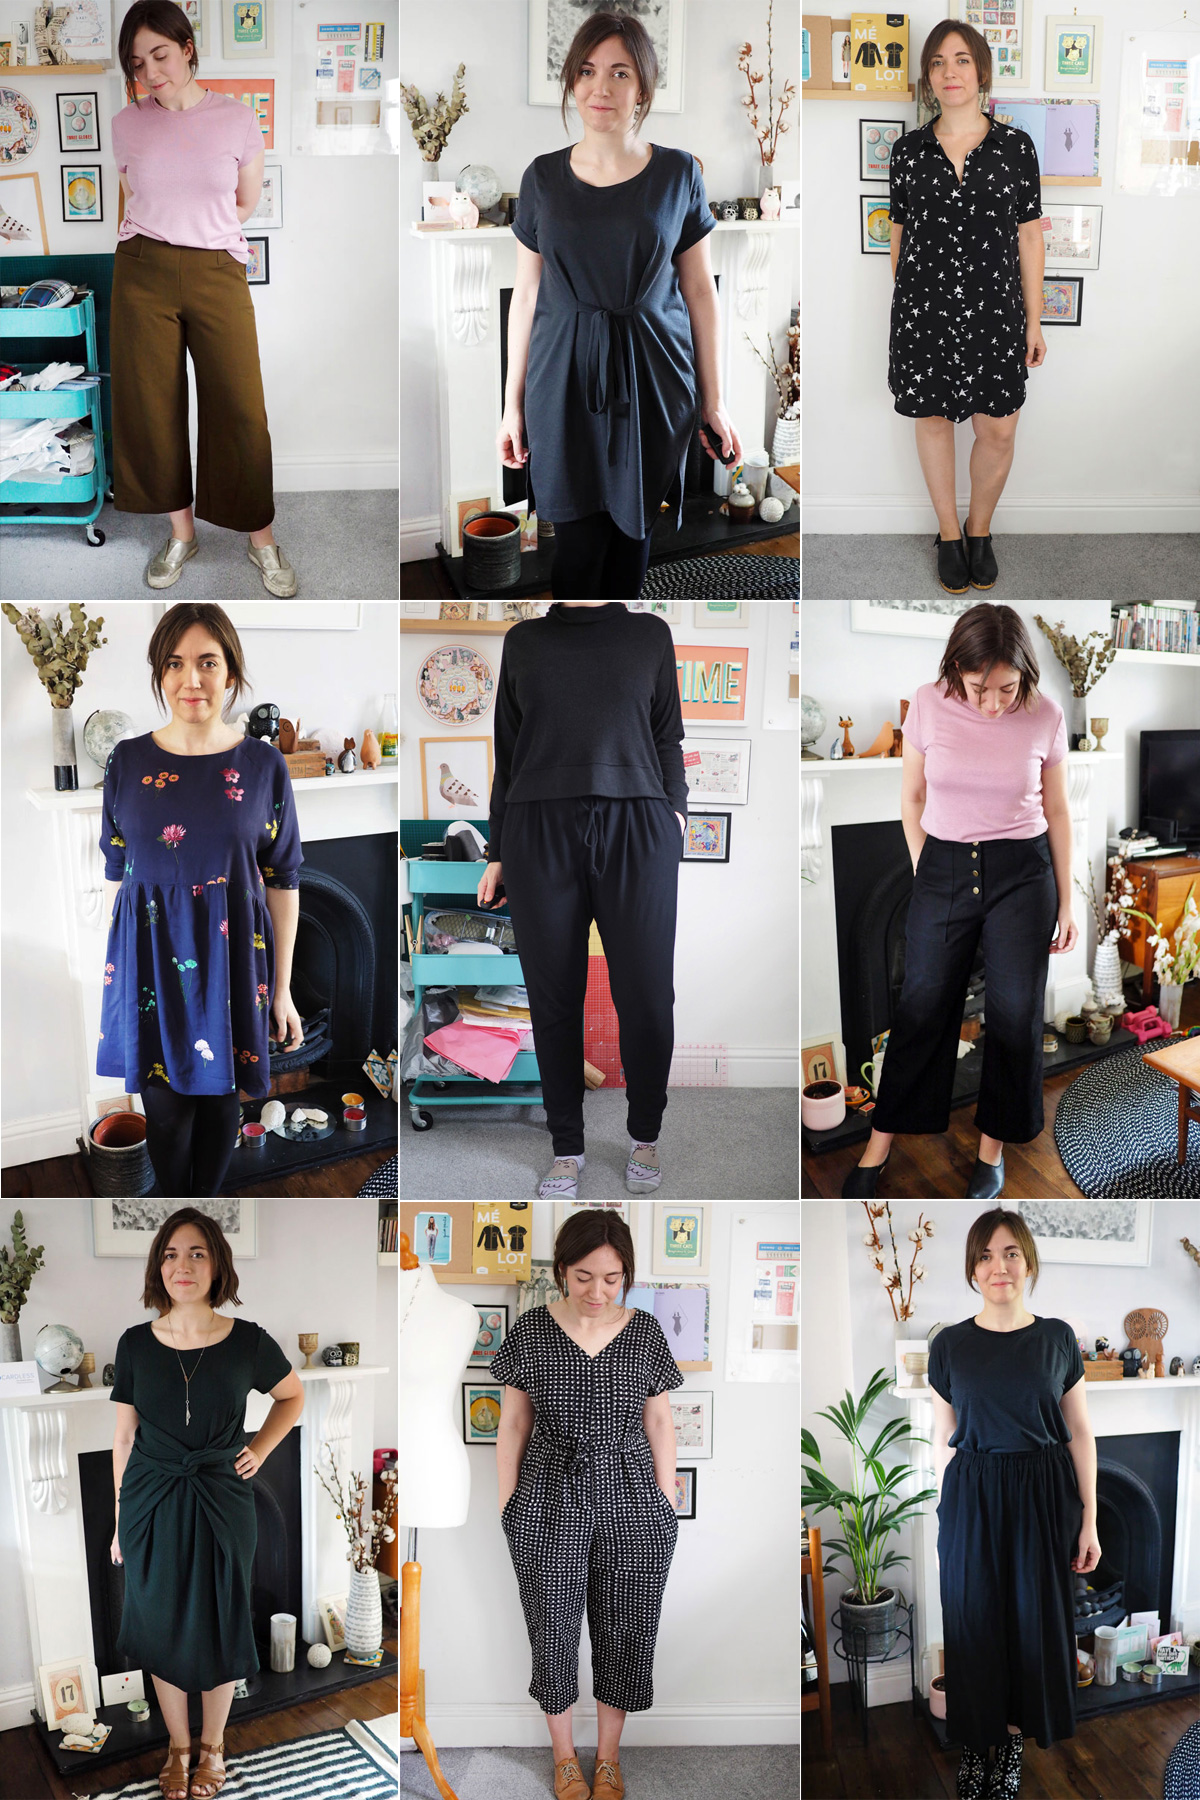 a82e611e8a There's a million and one thinkpieces about how to create a capsule wardrobe  (and I have a Pinterest board dedicated to the concept), but I found the  steps ...